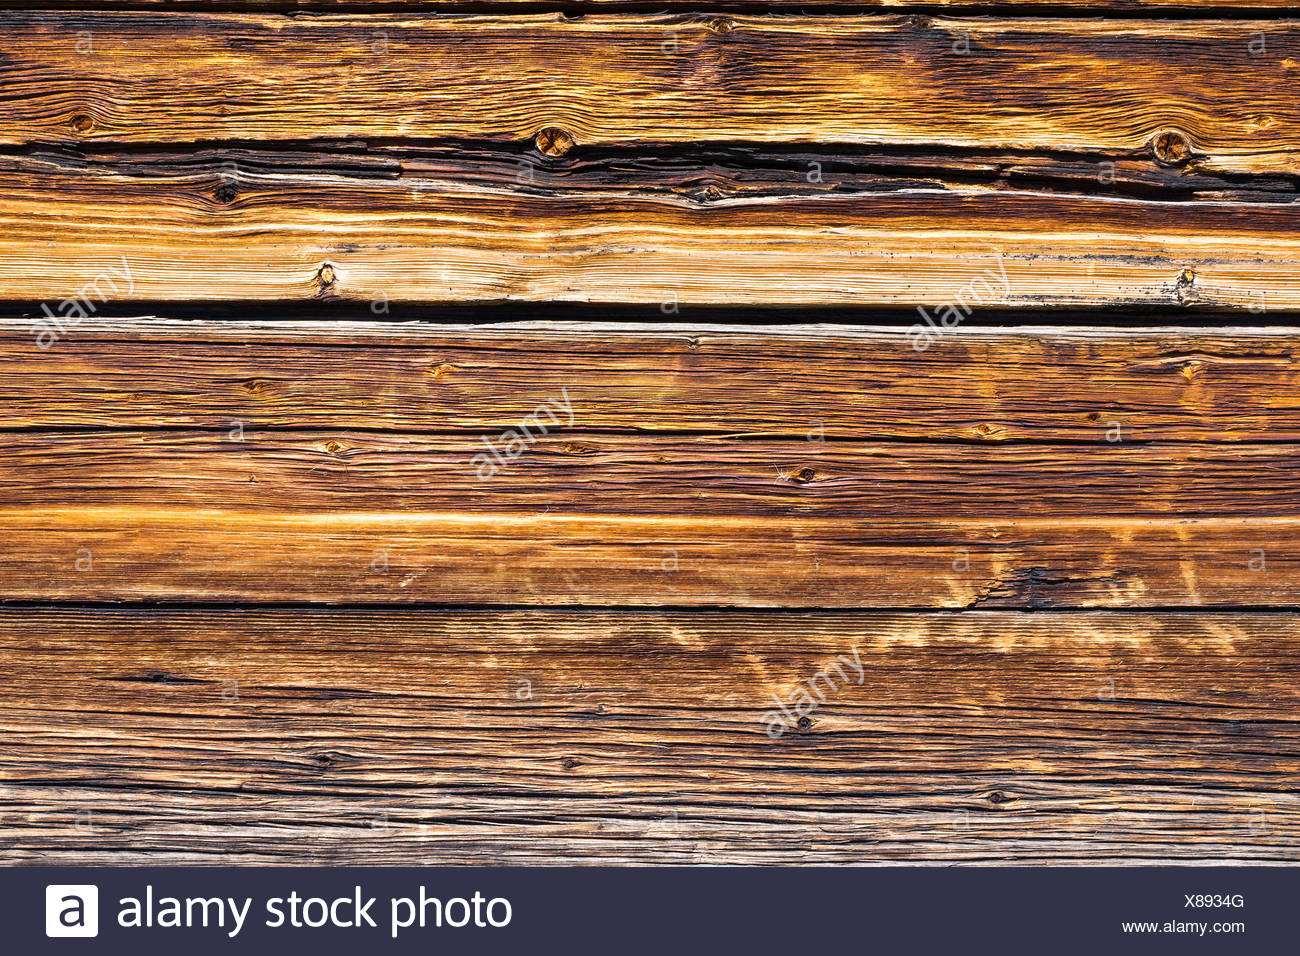 Brown wooden board - Stock Image